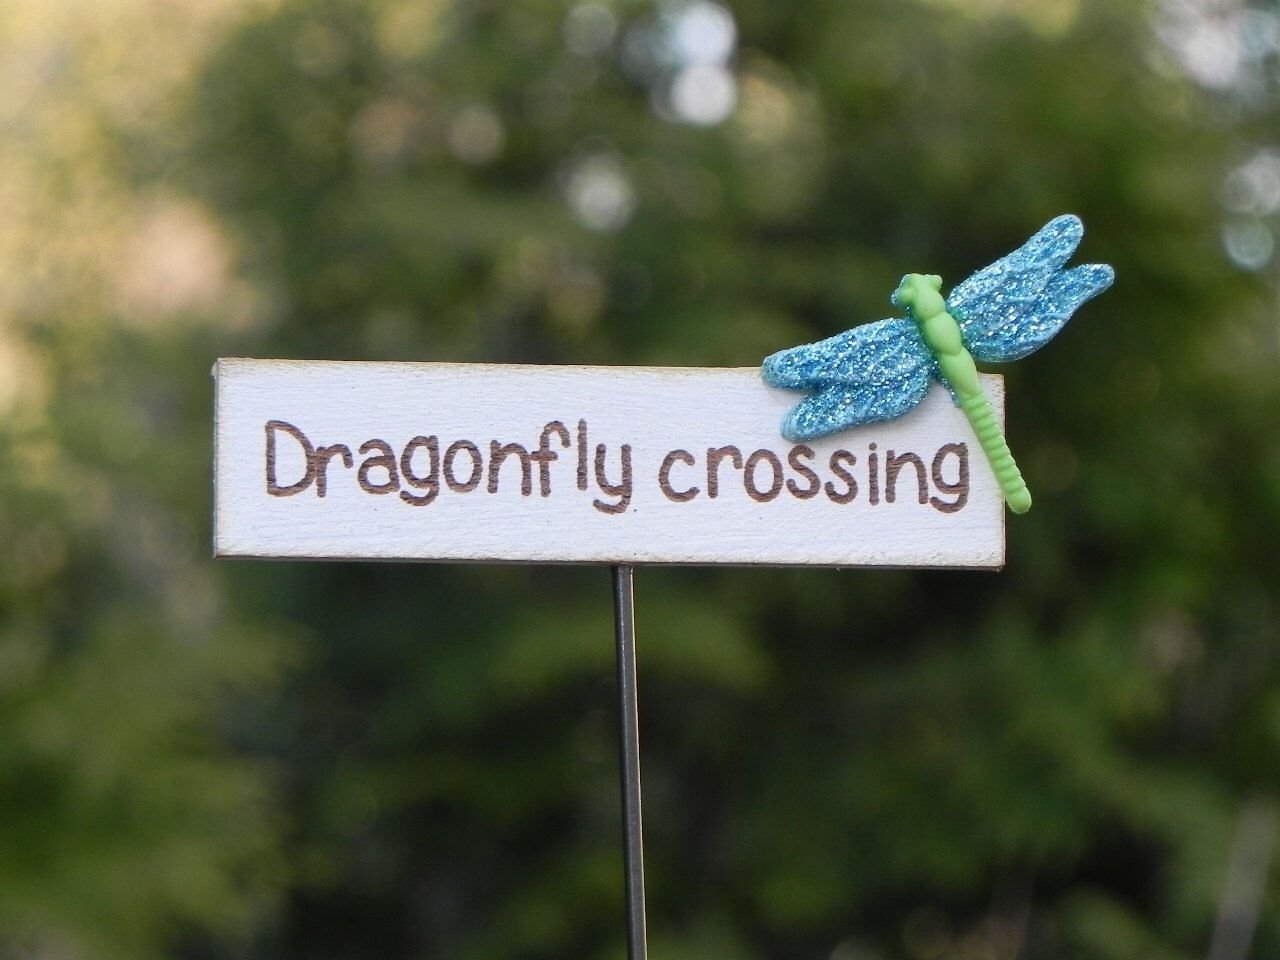 Fairy Garden Accessories Sign Miniature Dragonfly Crossing